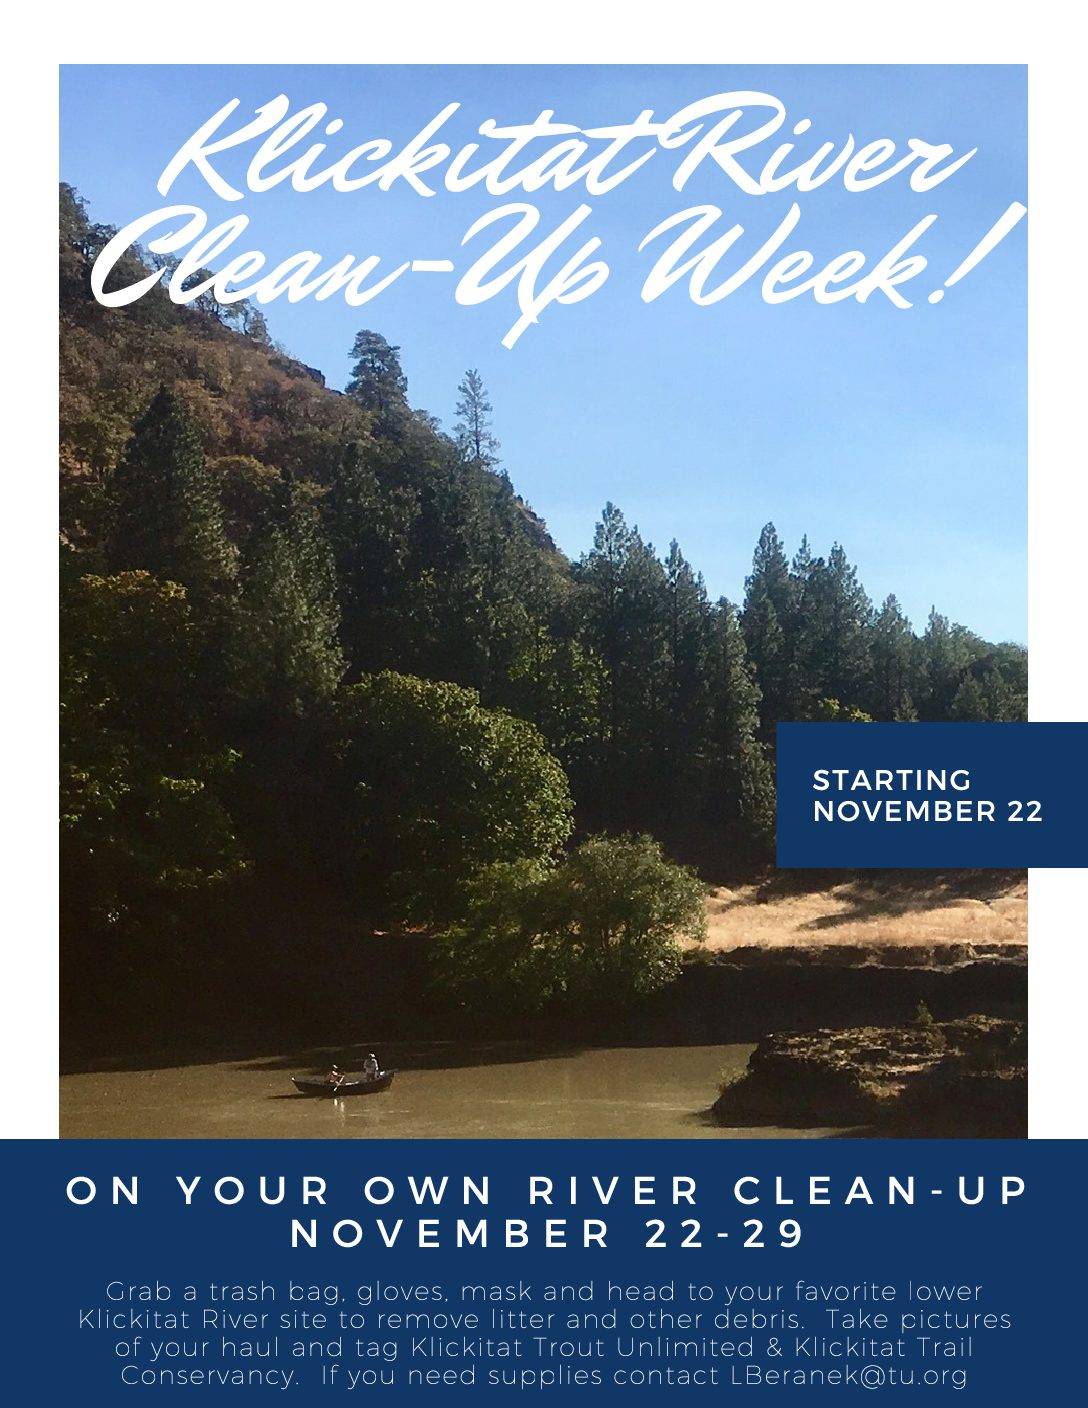 Klickitat River Clean-up!